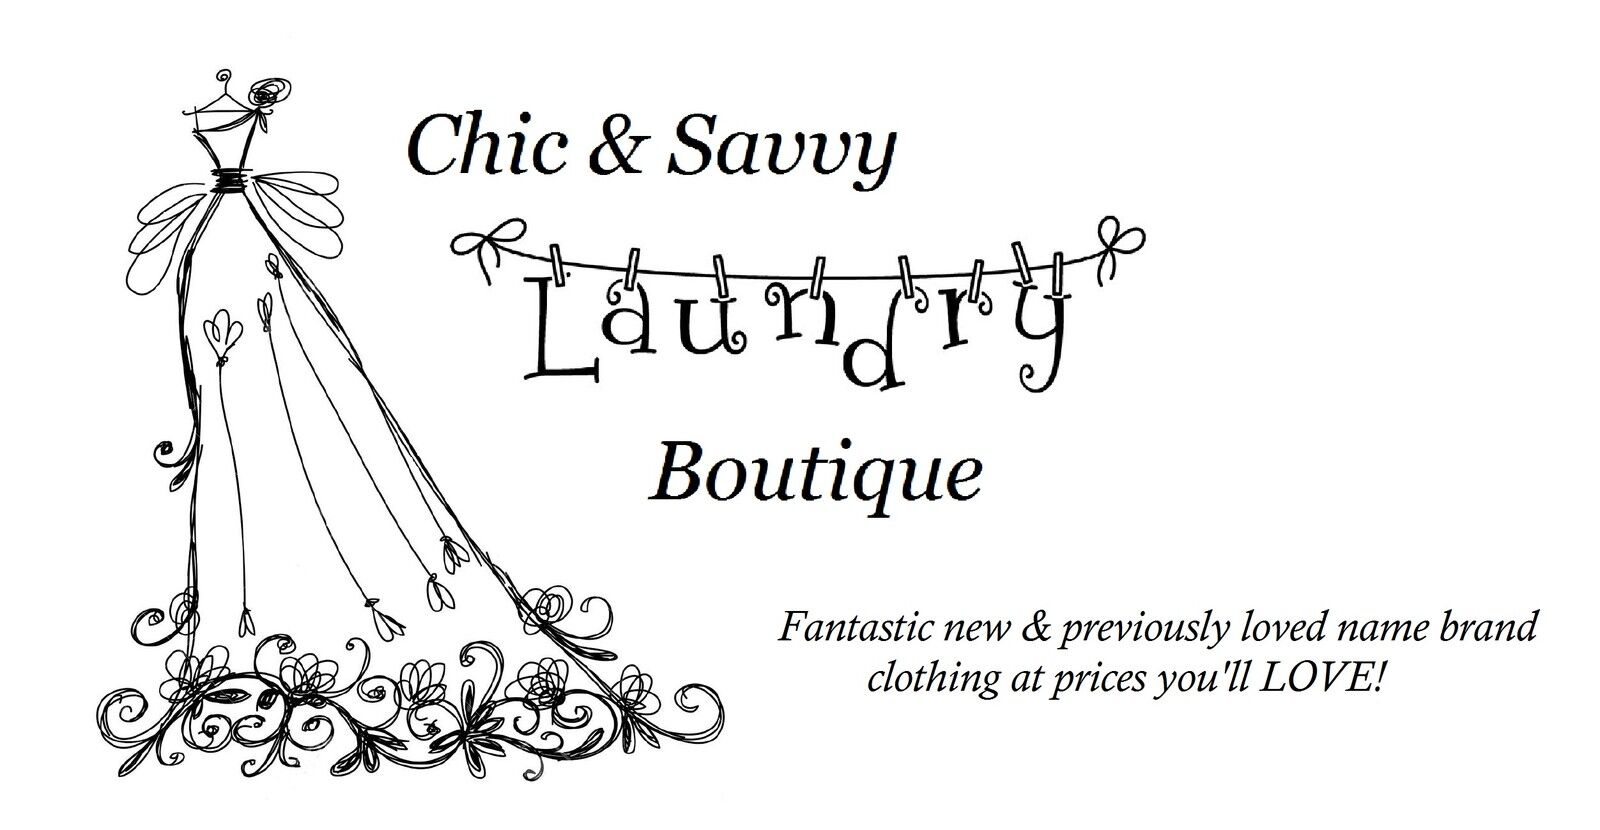 Chic & Savvy Laundry Boutique